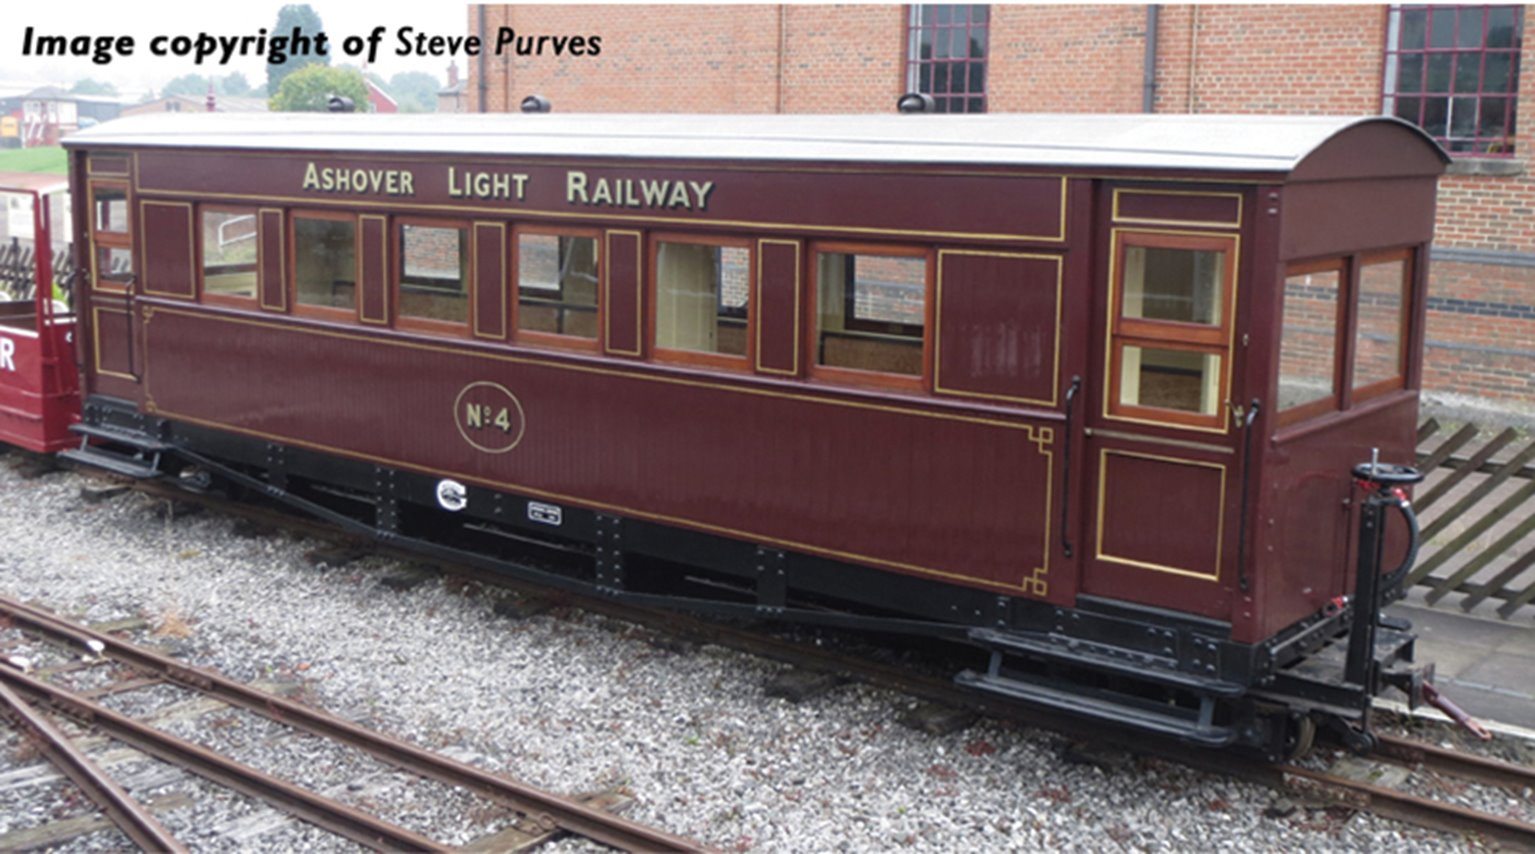 Bogie Coach in Ashover Railway Crimson livery(Price is estimated - we will notify you if price rises and offer option to cancel)